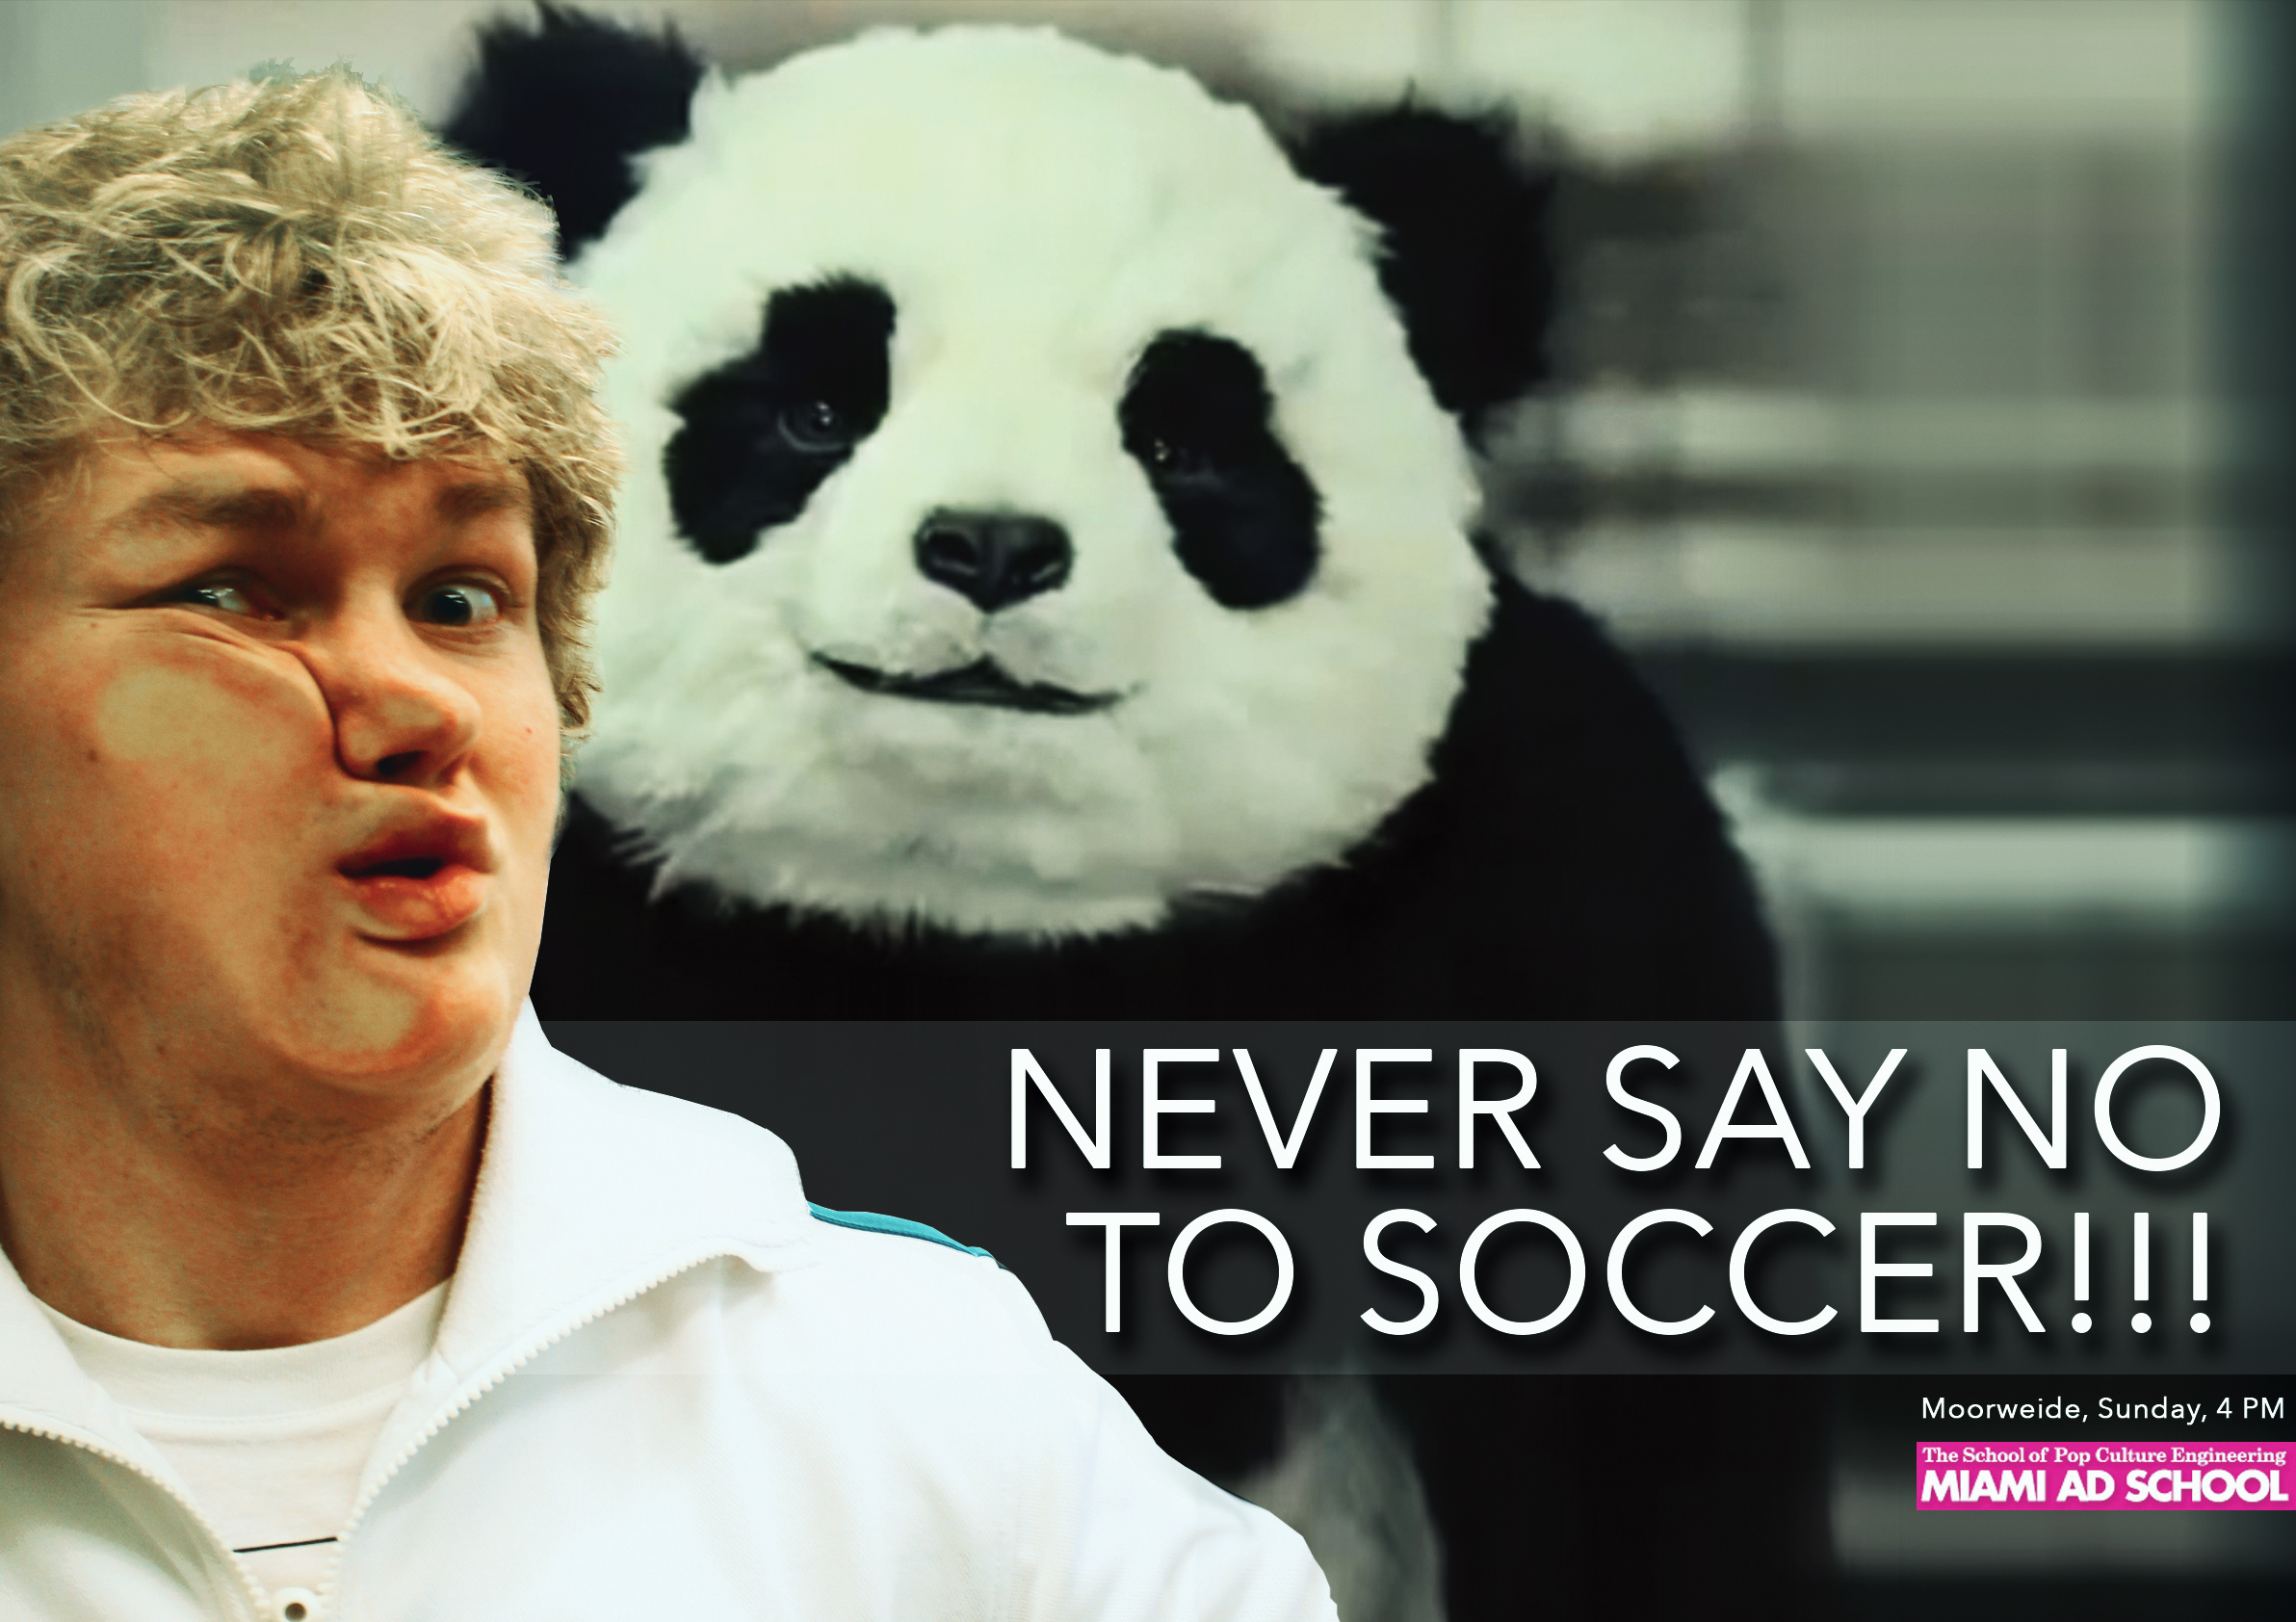 Never say no to soccer